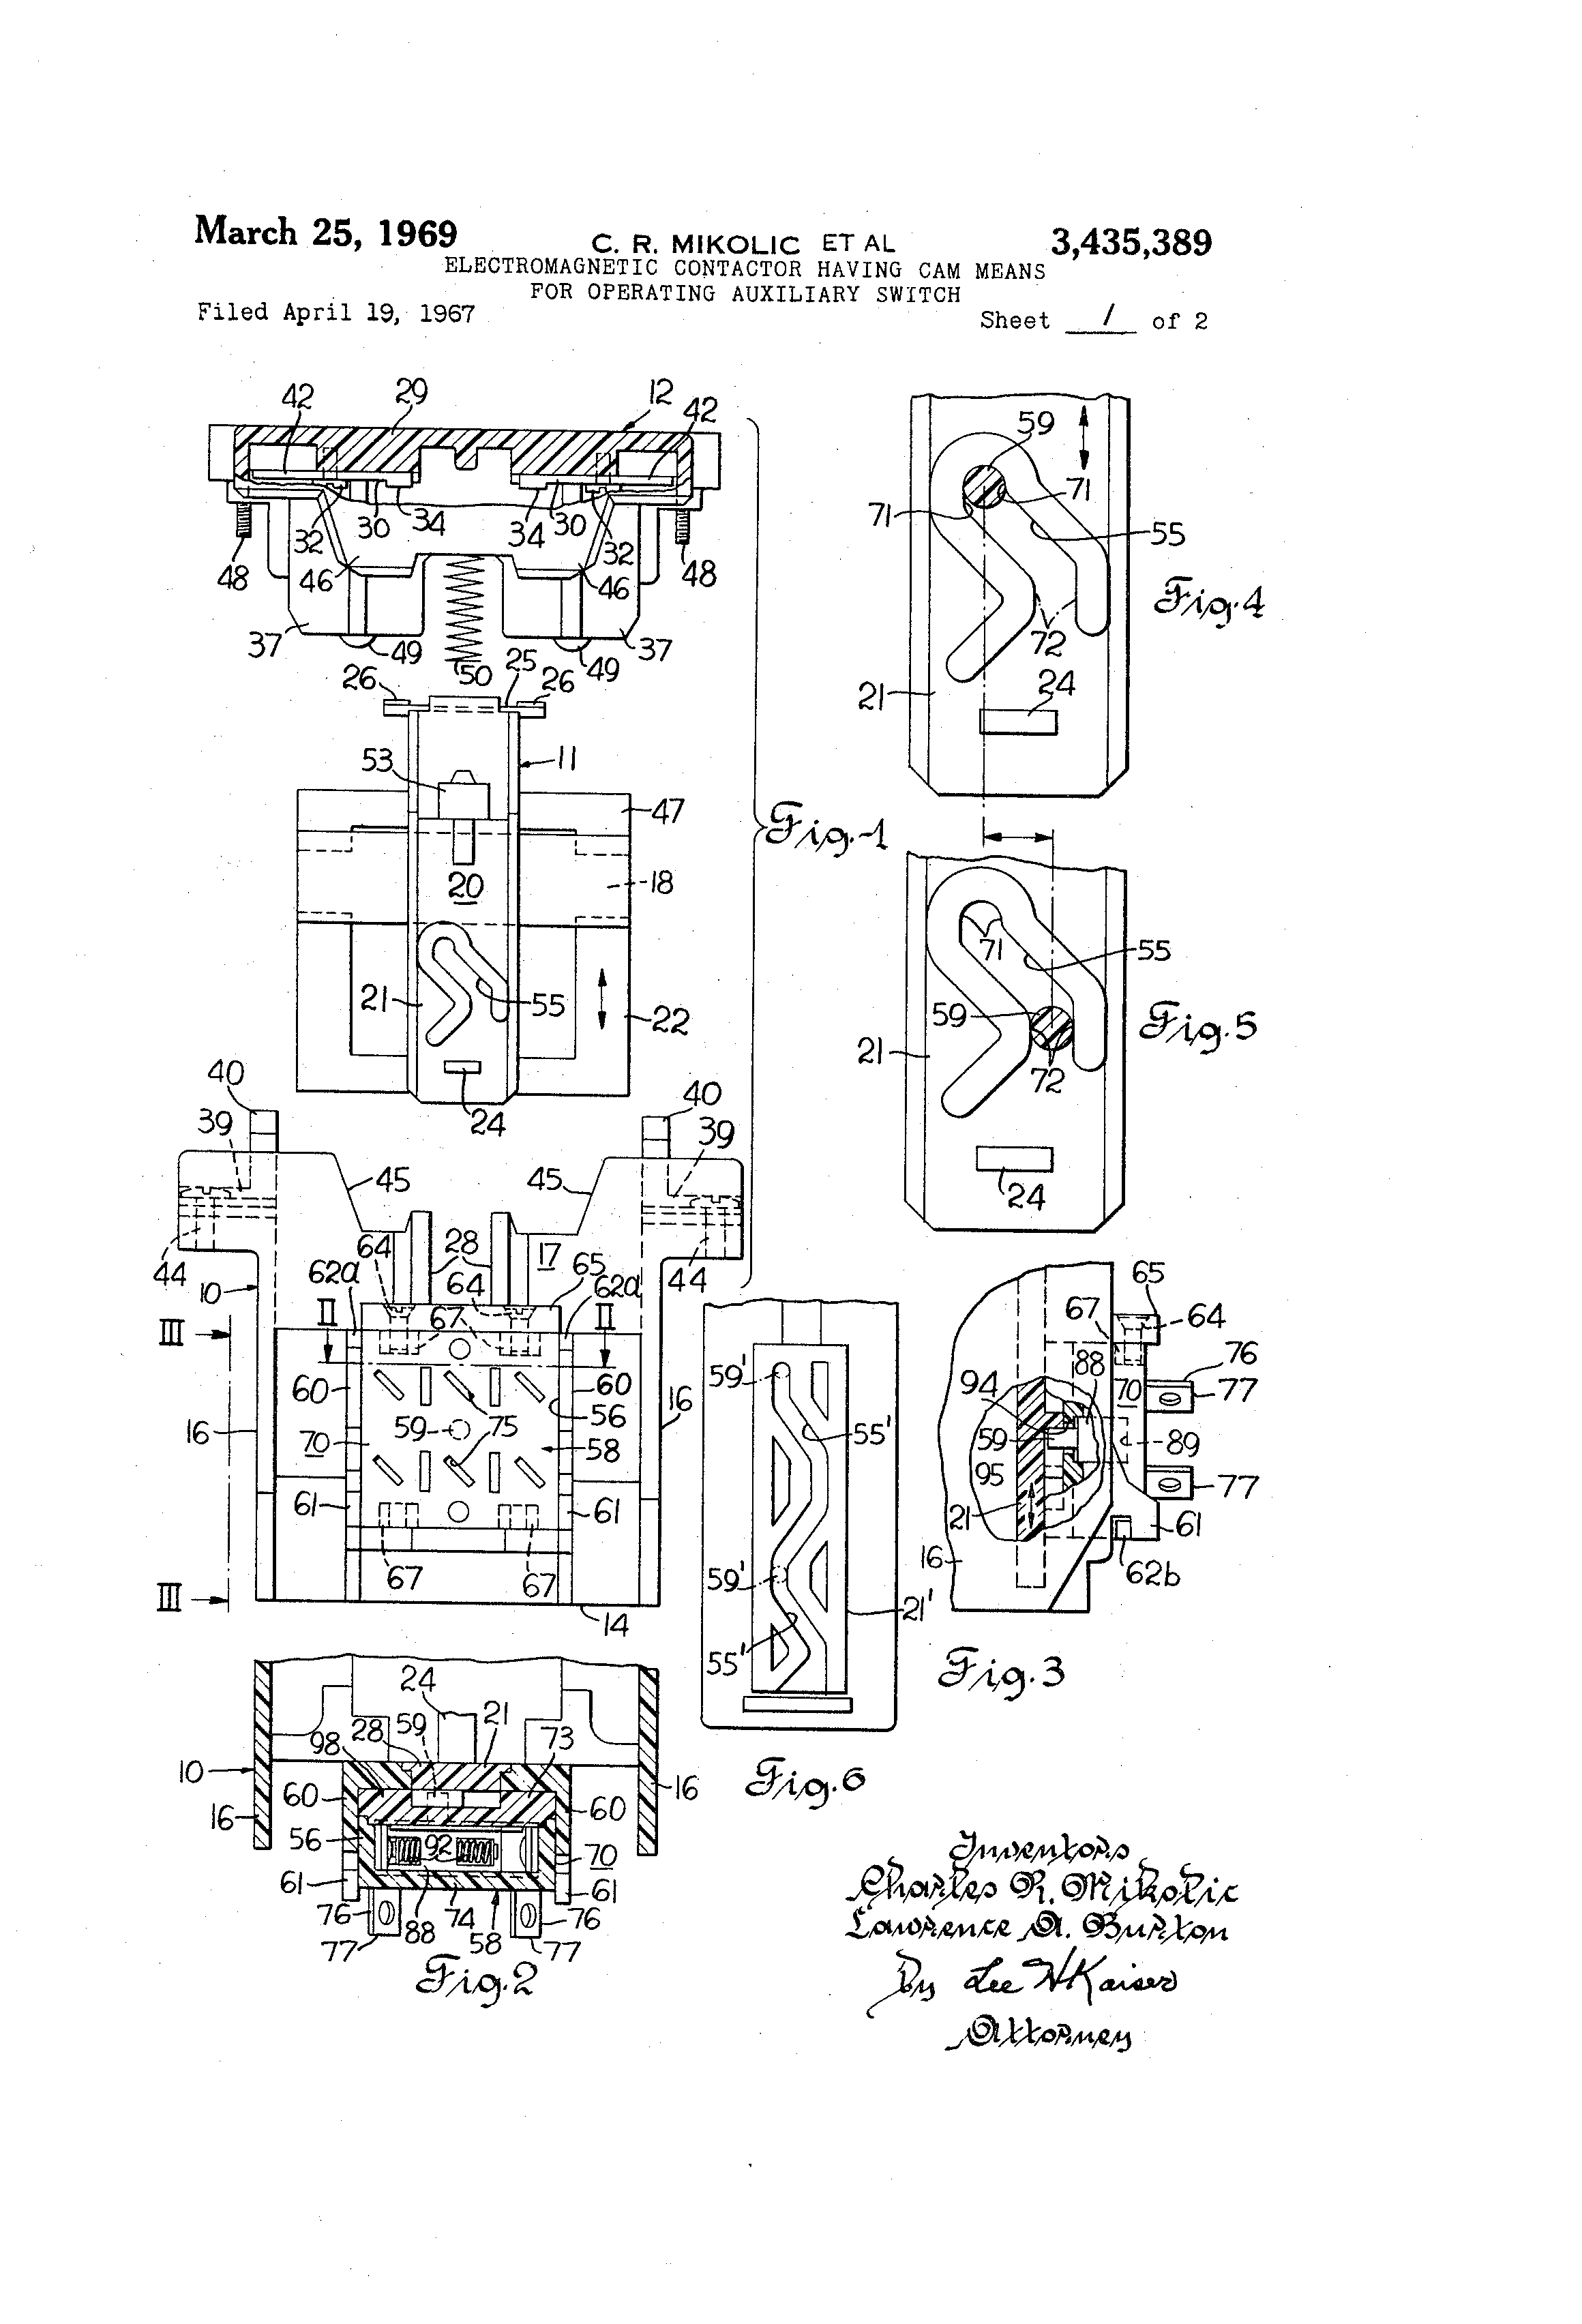 New Auxiliary Contactor Wiring Diagram  Diagram  Diagramtemplate  Diagramsample Check More At